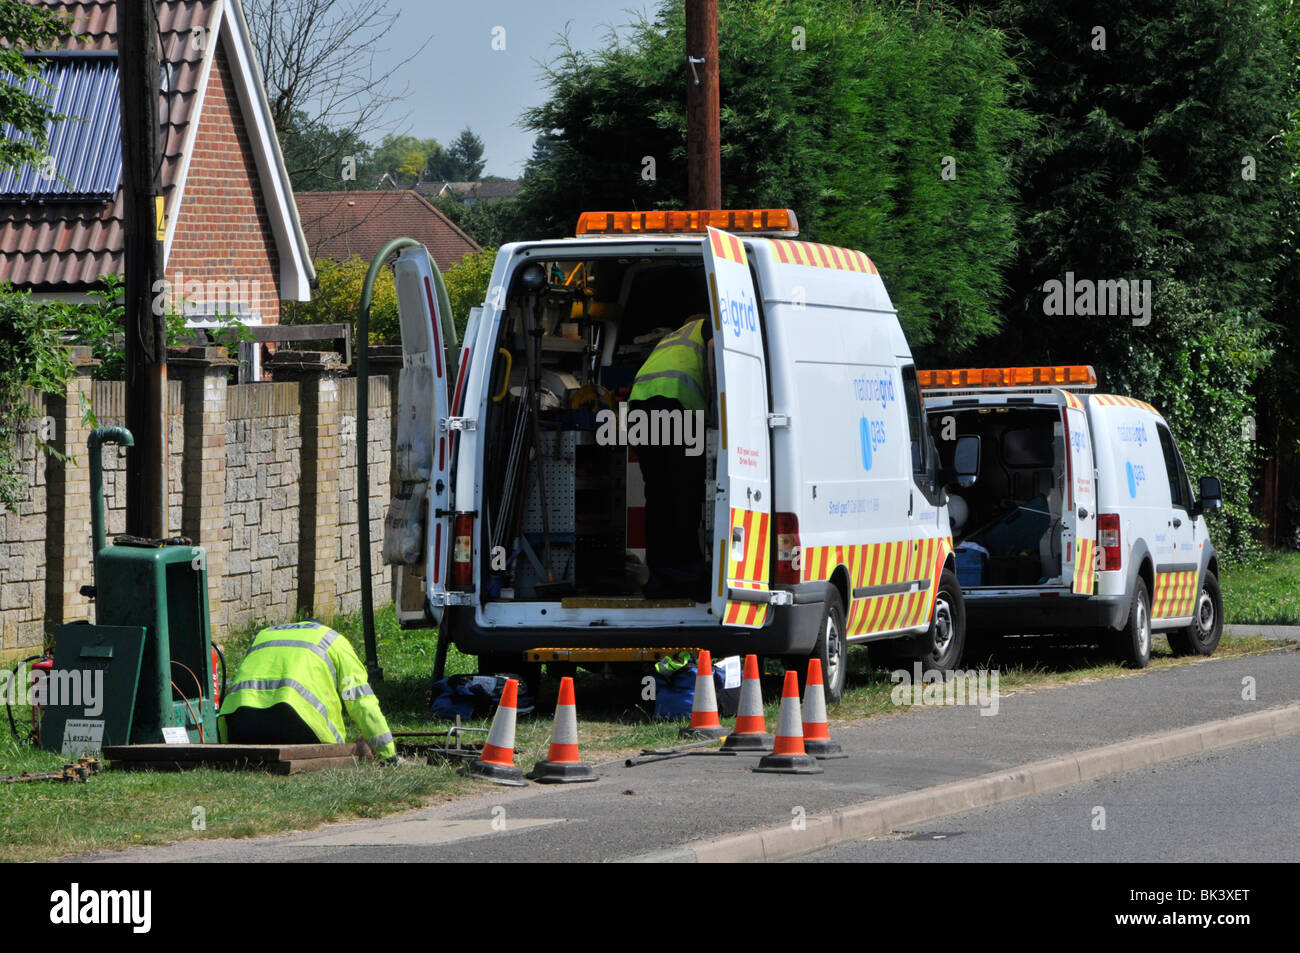 Gas national grid workmen and vans - Stock Image